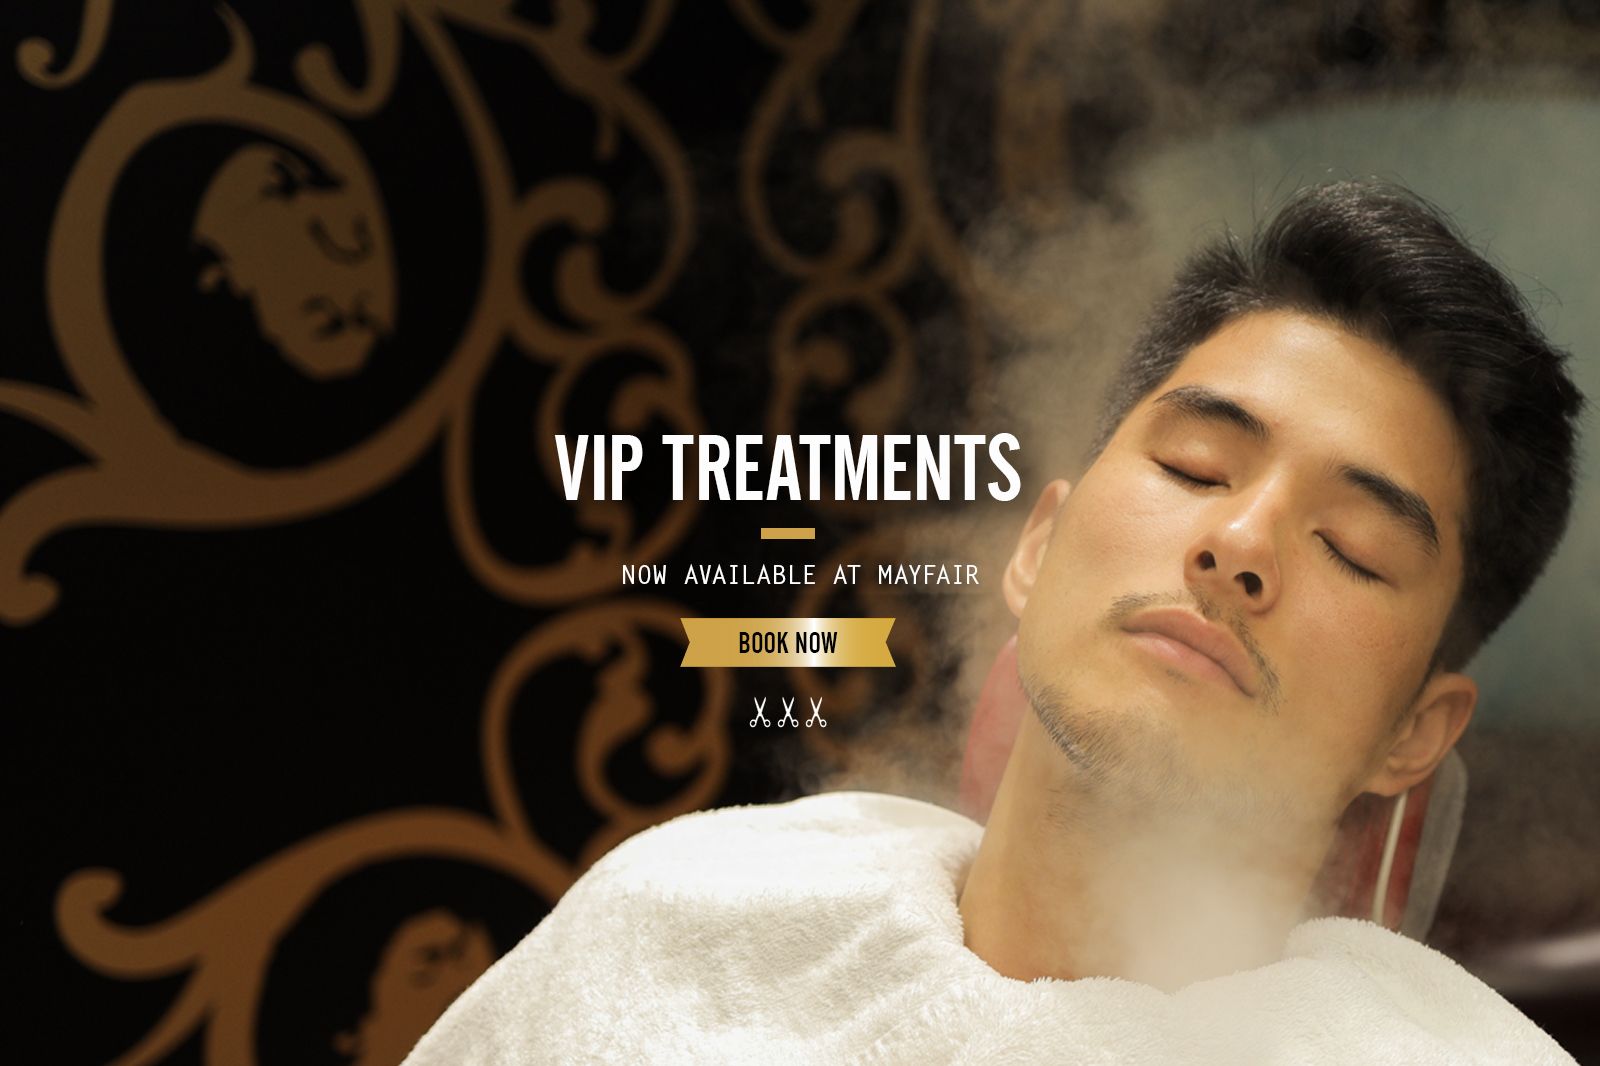 VIP Treatments